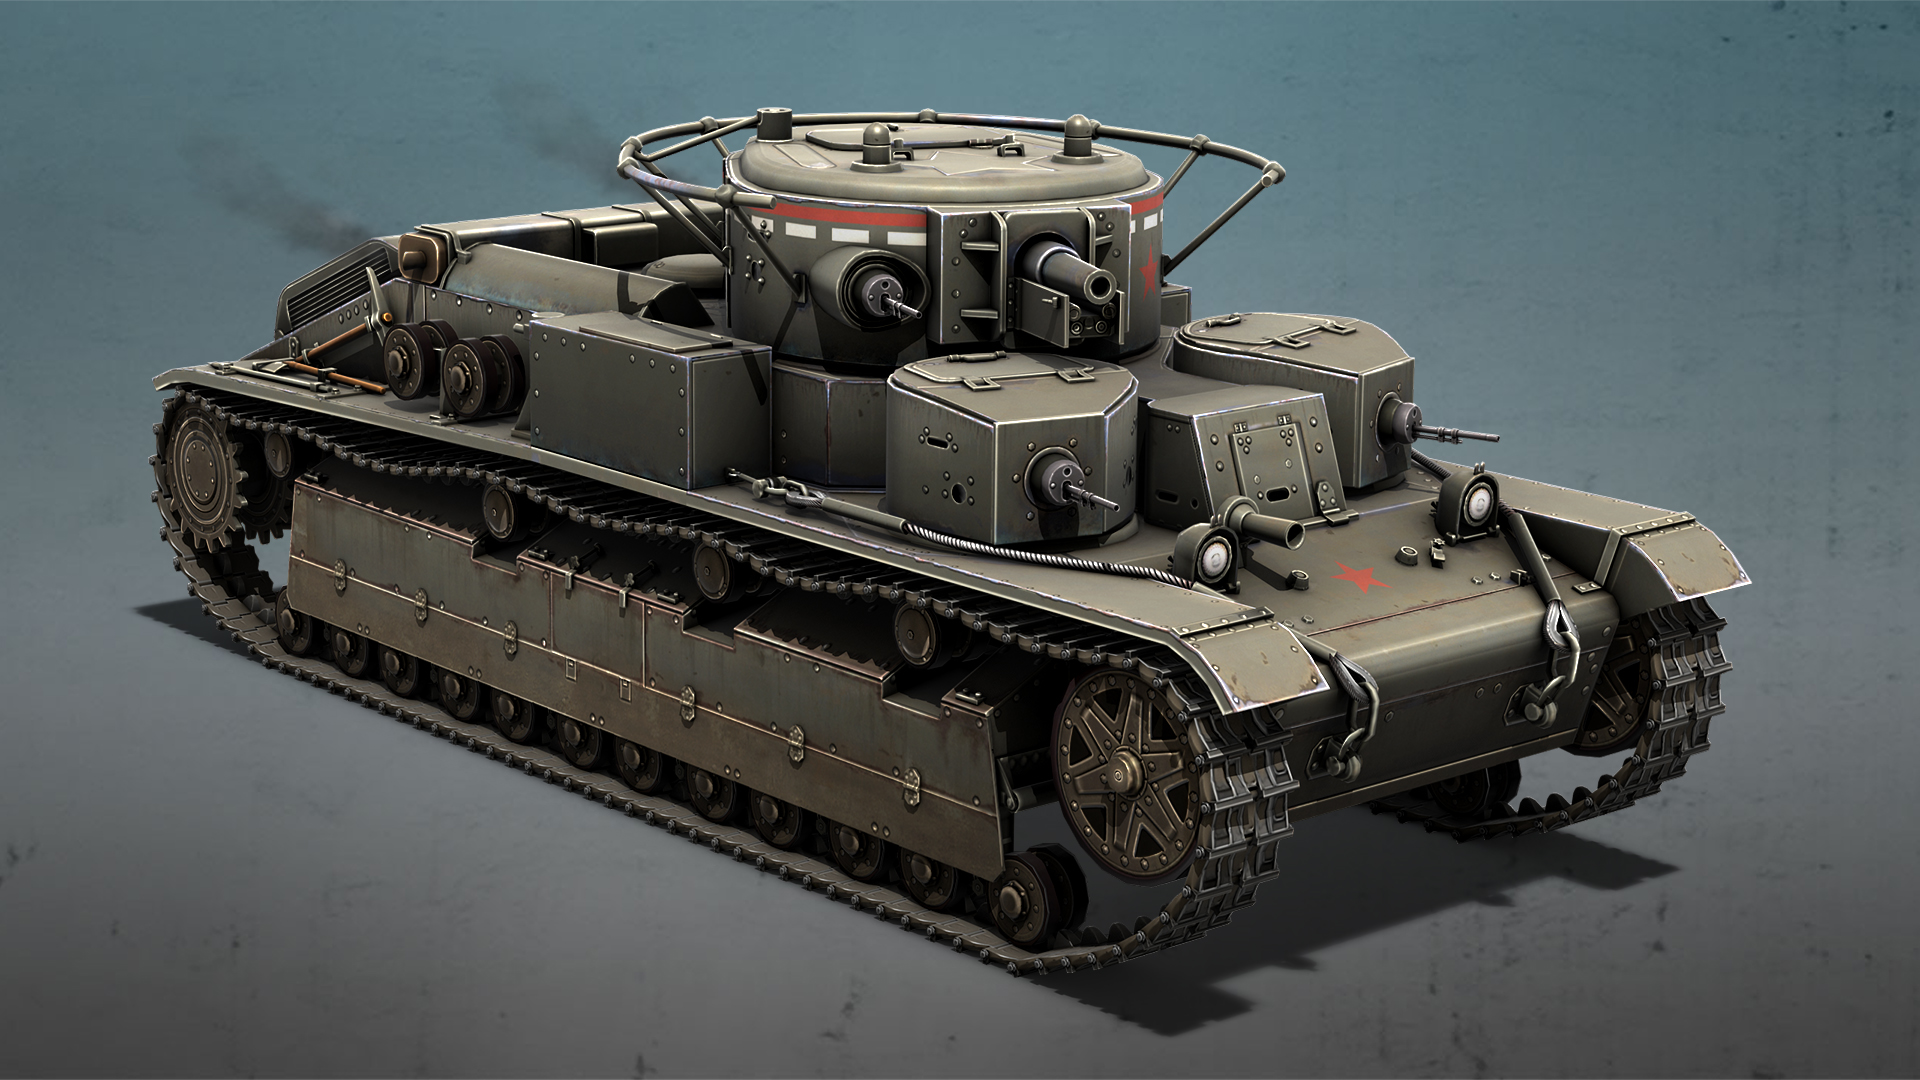 Company Of Heroes 2 Wallpaper Hd Press Release Five New Tanks And Half The Grind Heroes